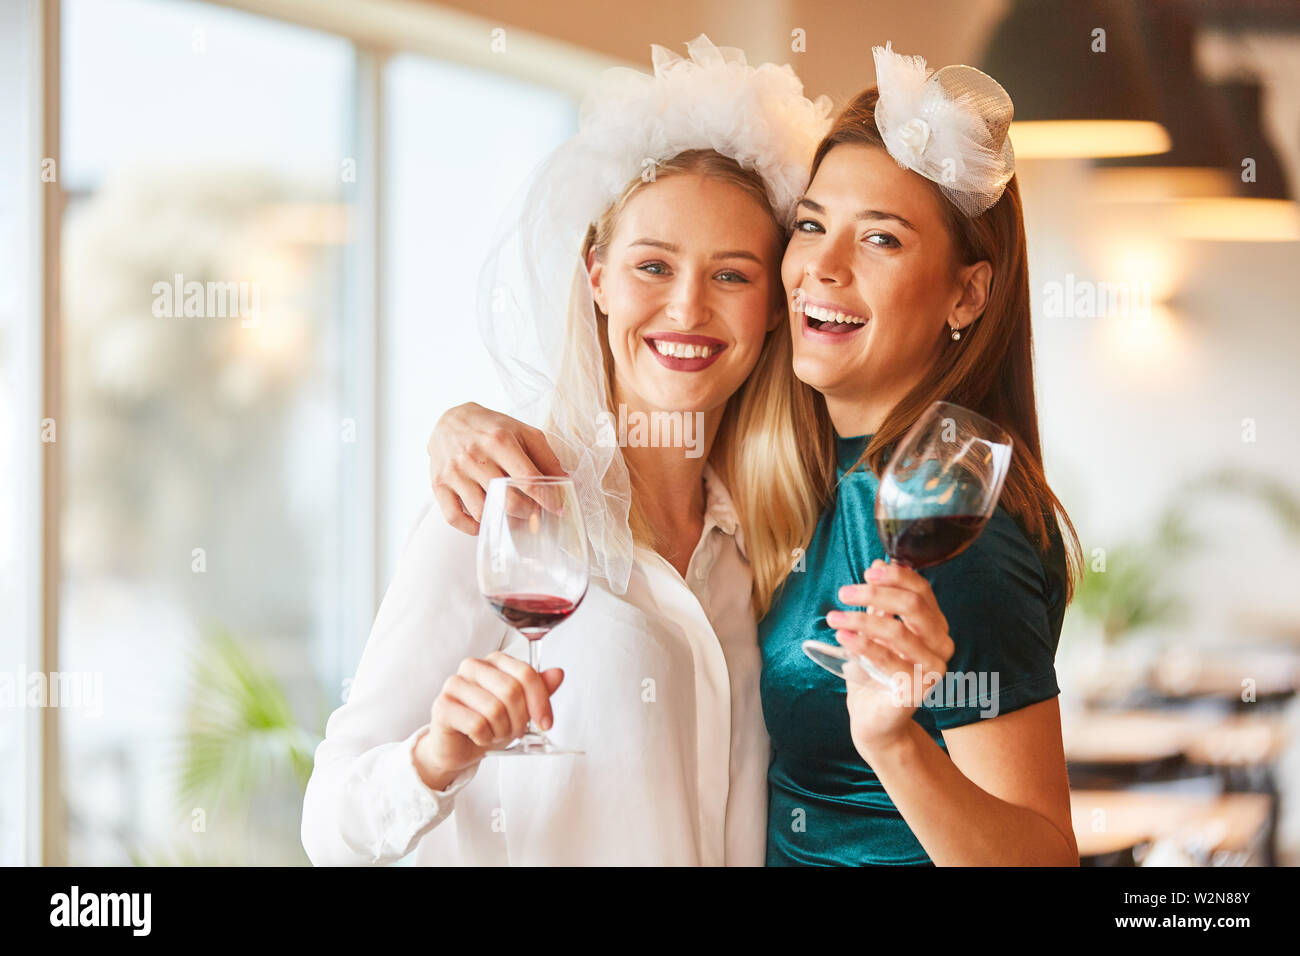 Happy bride is celebrating with her best friend on the bachelorette party - Stock Image